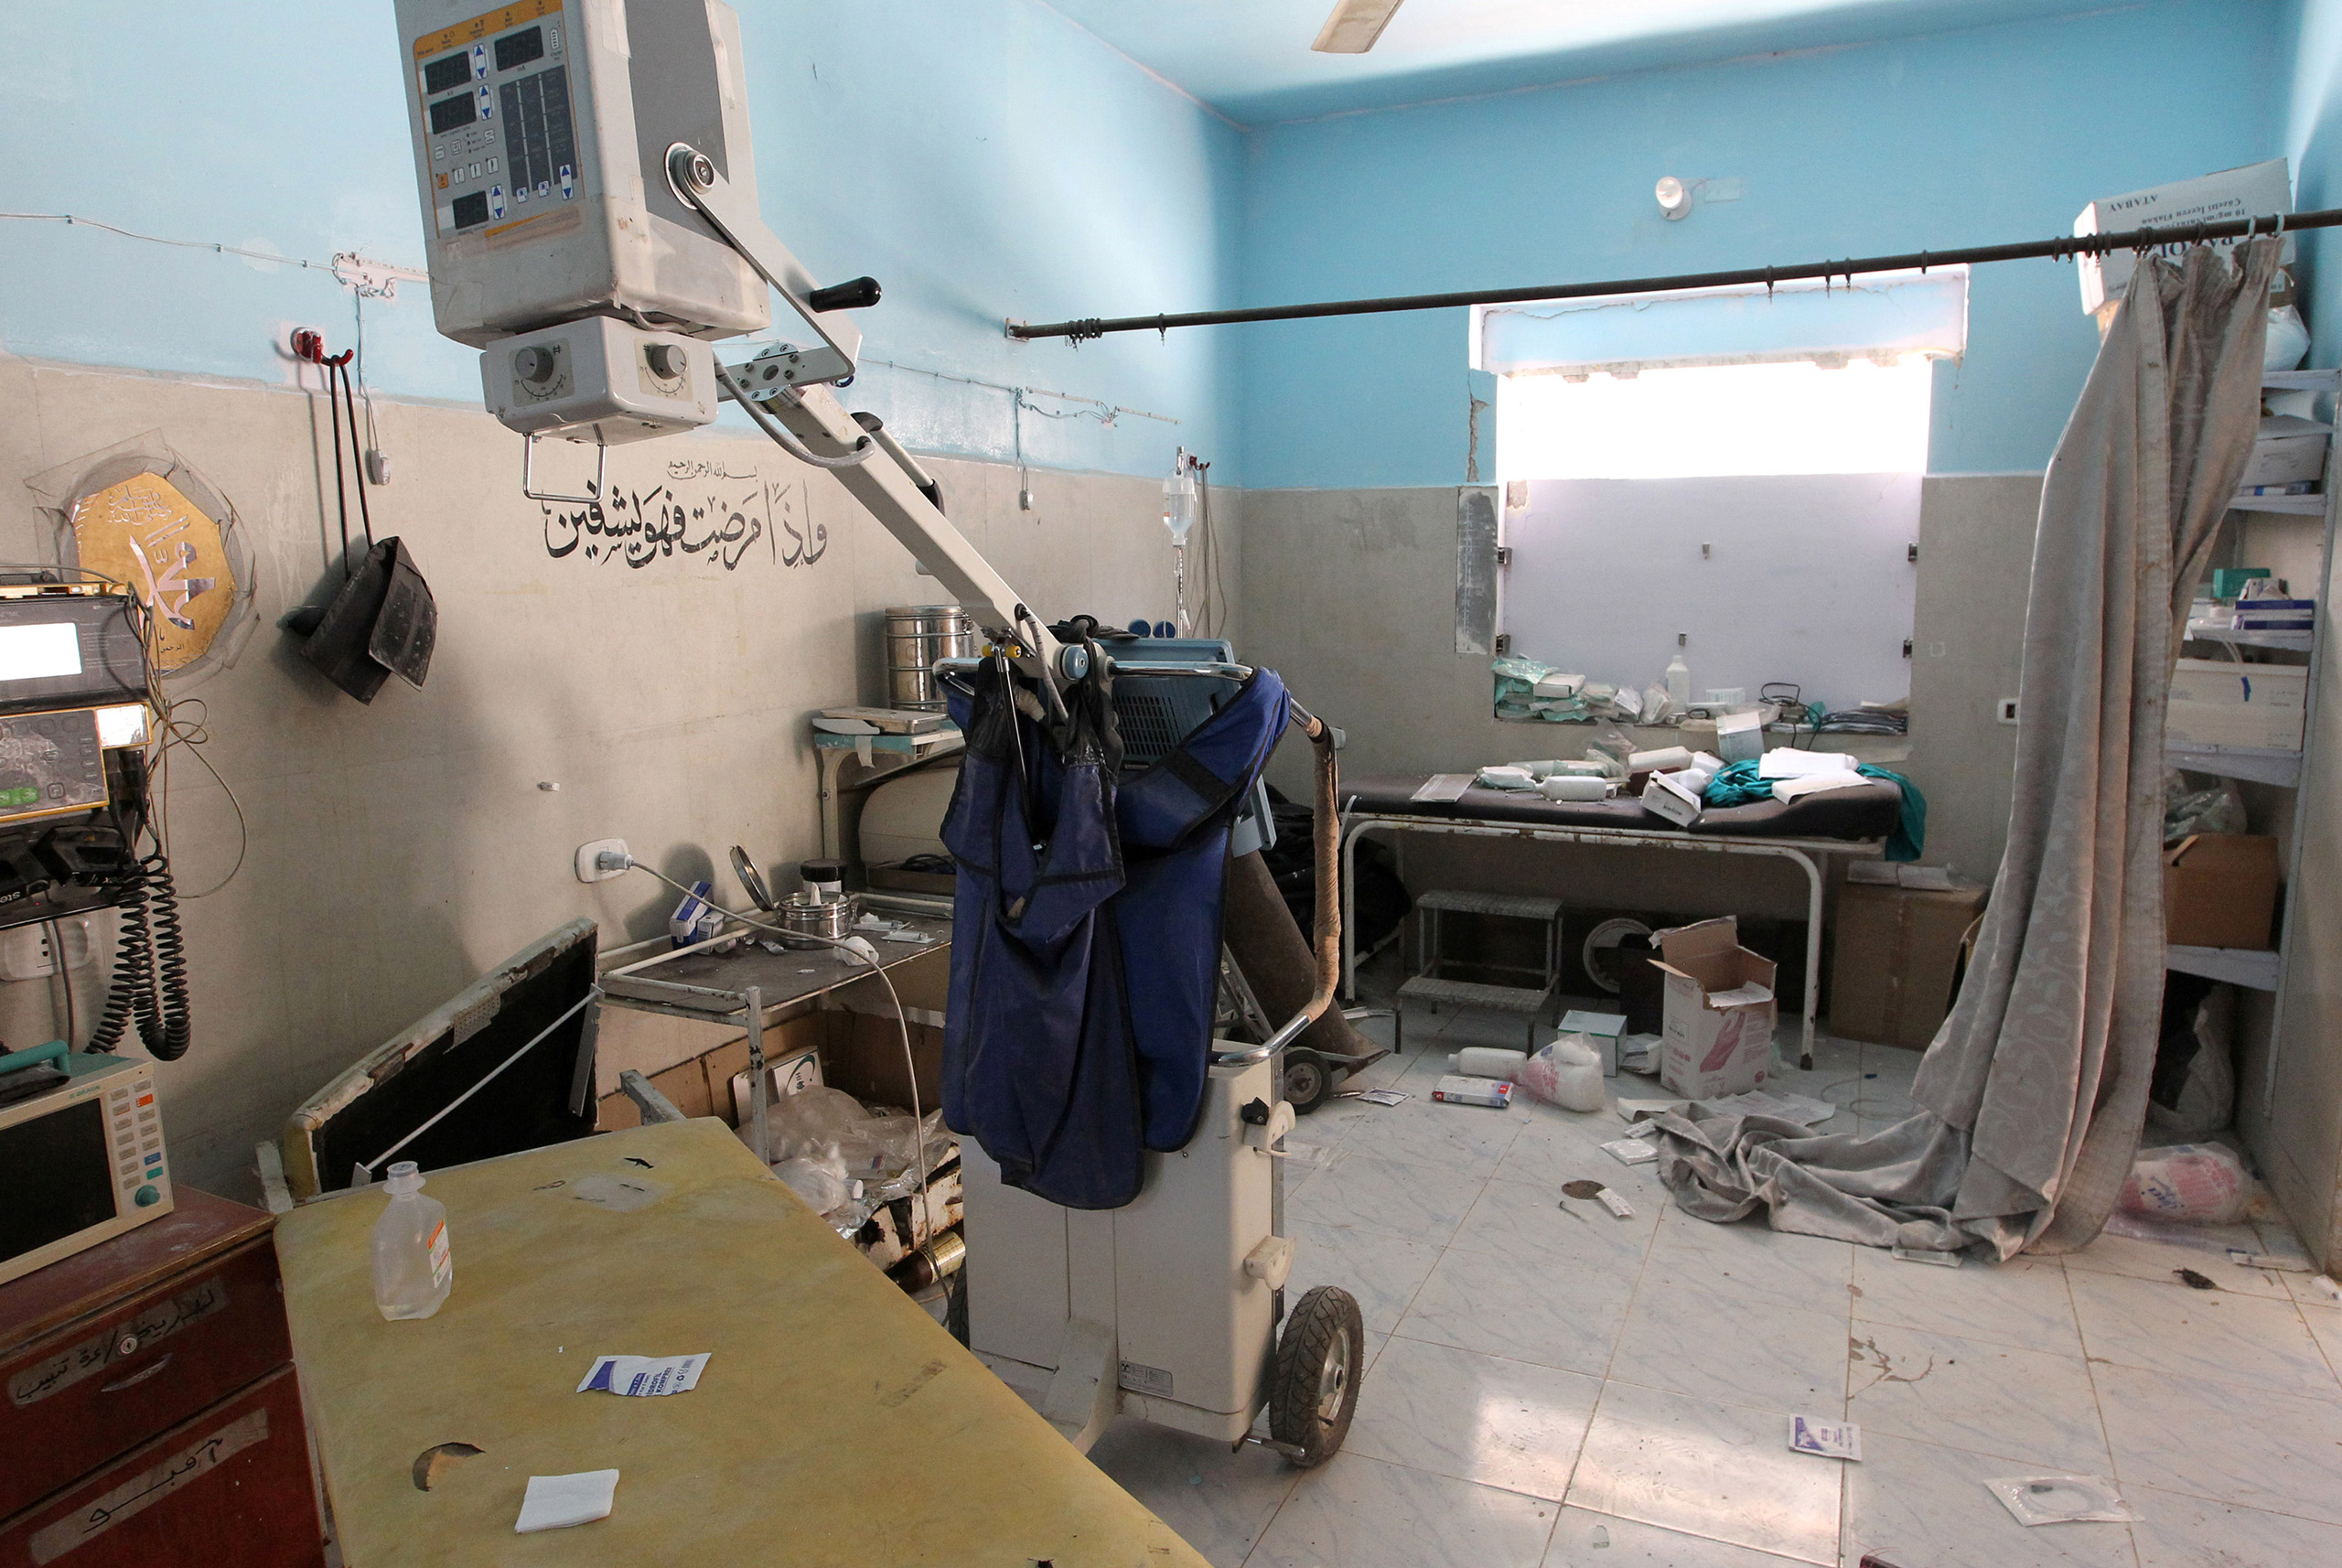 A video screengrab shows the damage inside Anadan Hospital, sponsored by Union of Medical Care and Relief Organizations (UOSSM), after it was hit by an airstrike in the rebel held city of Anadan, northern Aleppo province, Syria, on July 31, 2016.